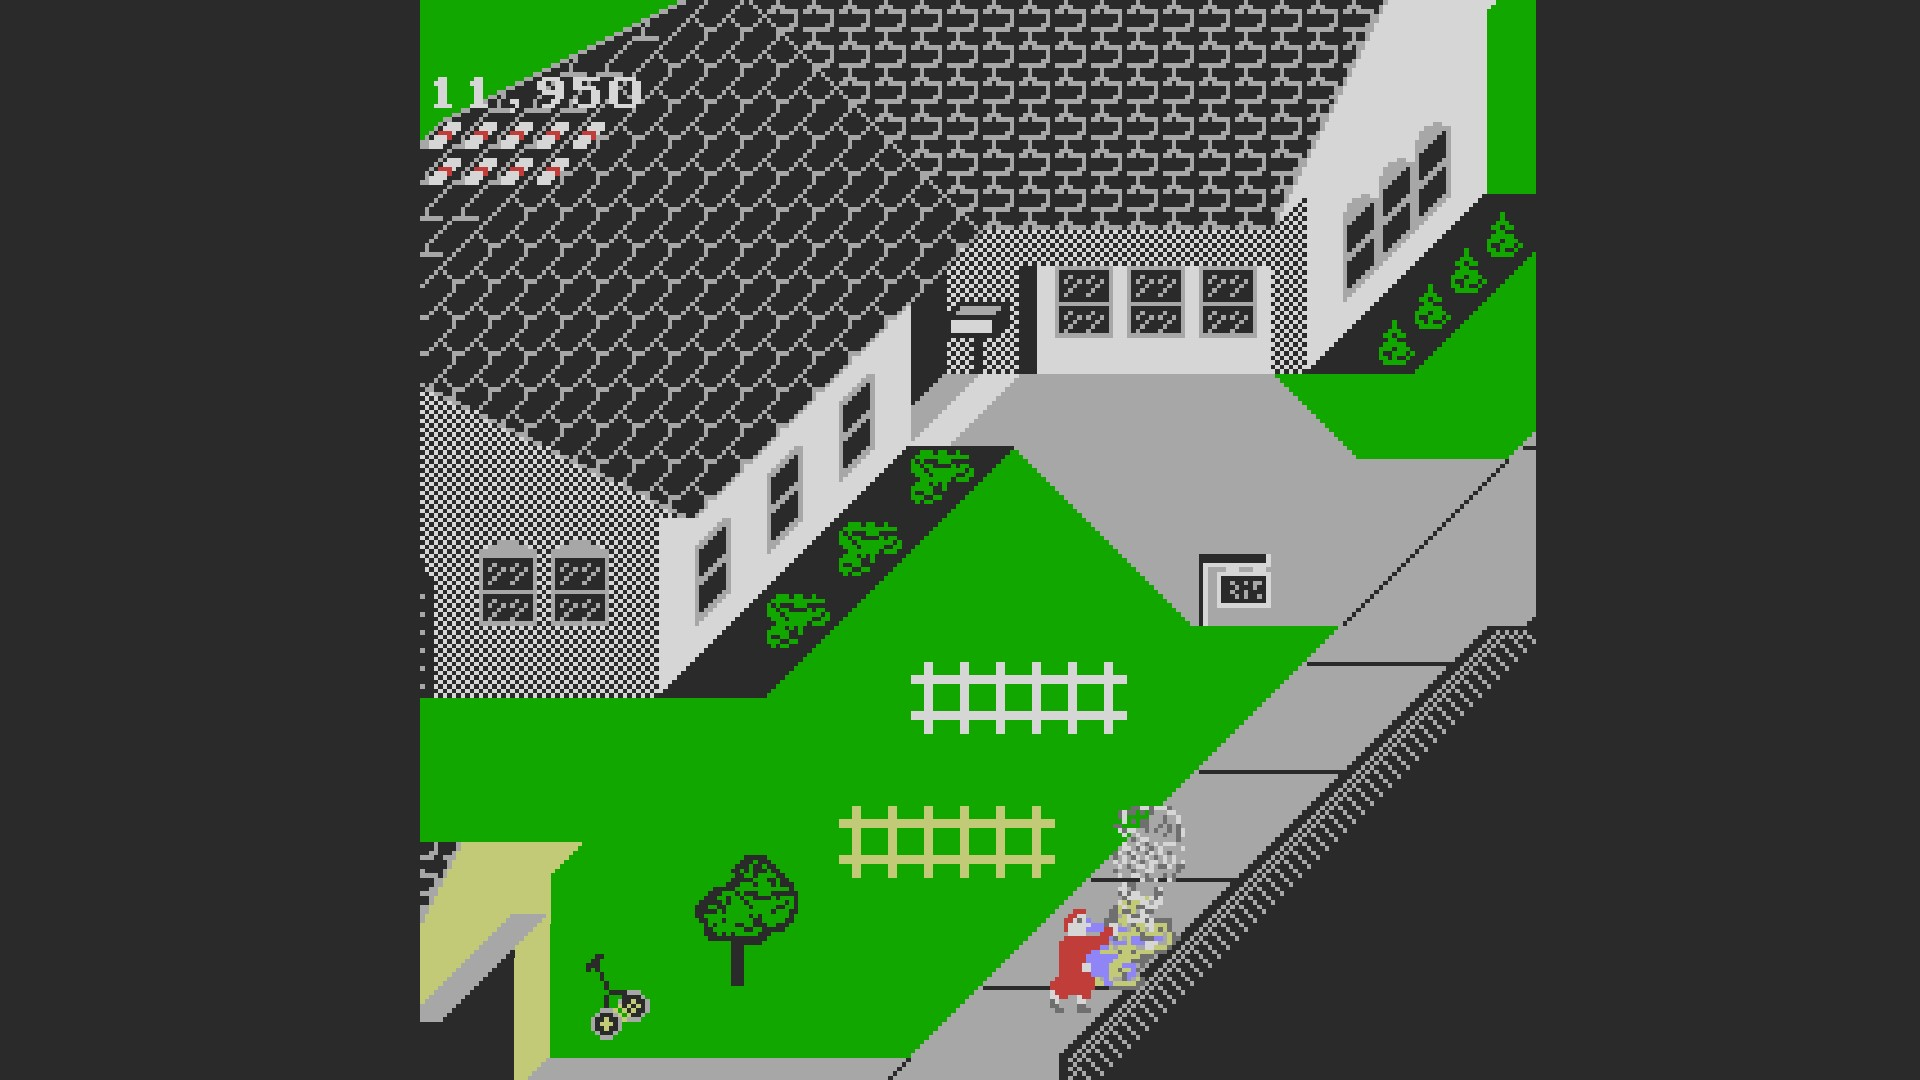 Paperboy 11,950 points